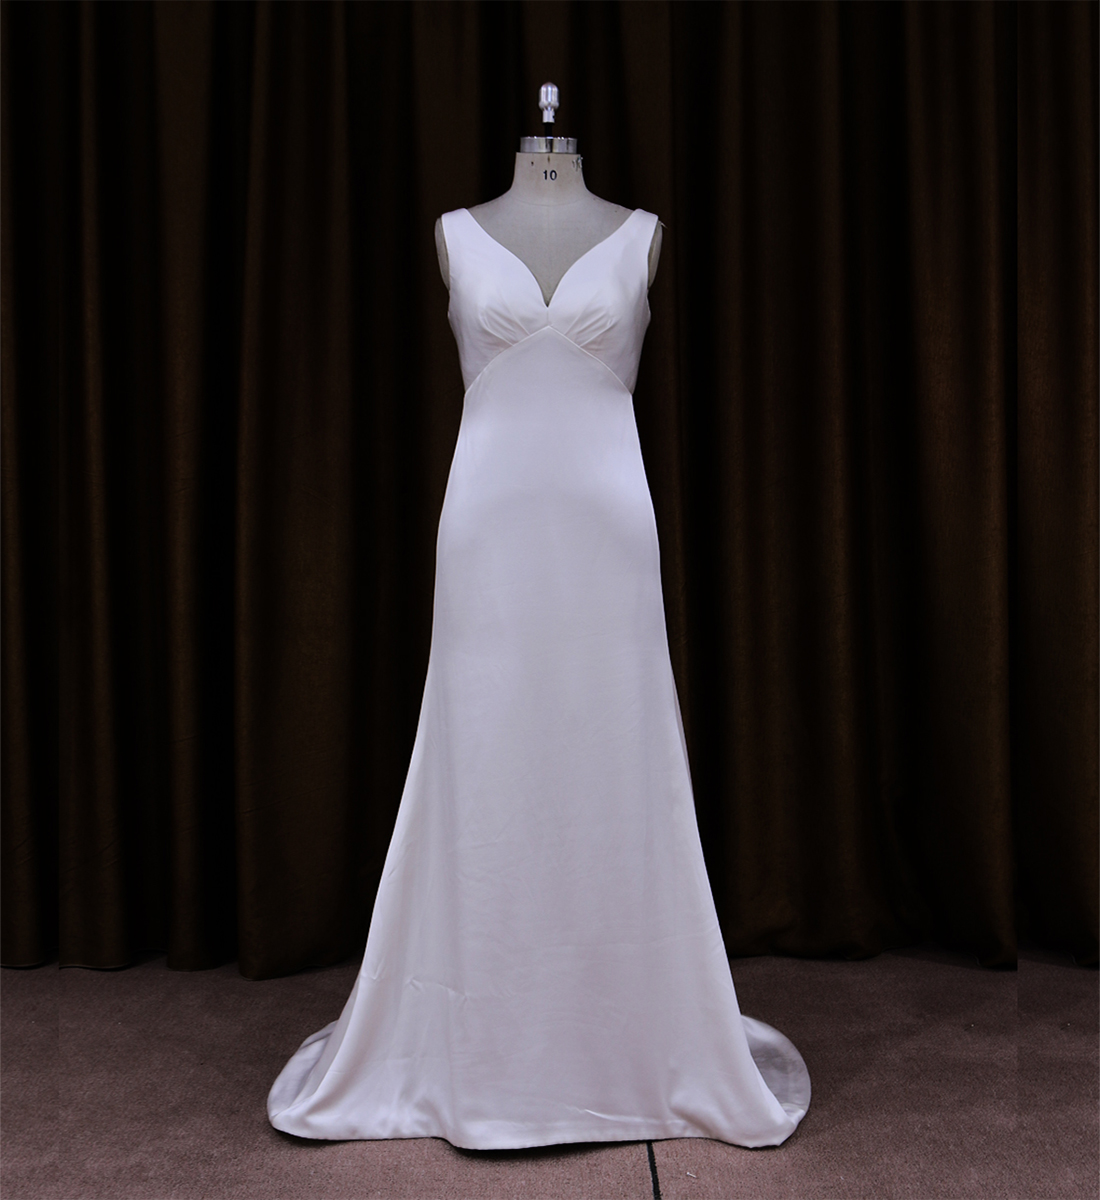 Satin Sleeveless V Neck Wedding Dress With Sheer Back